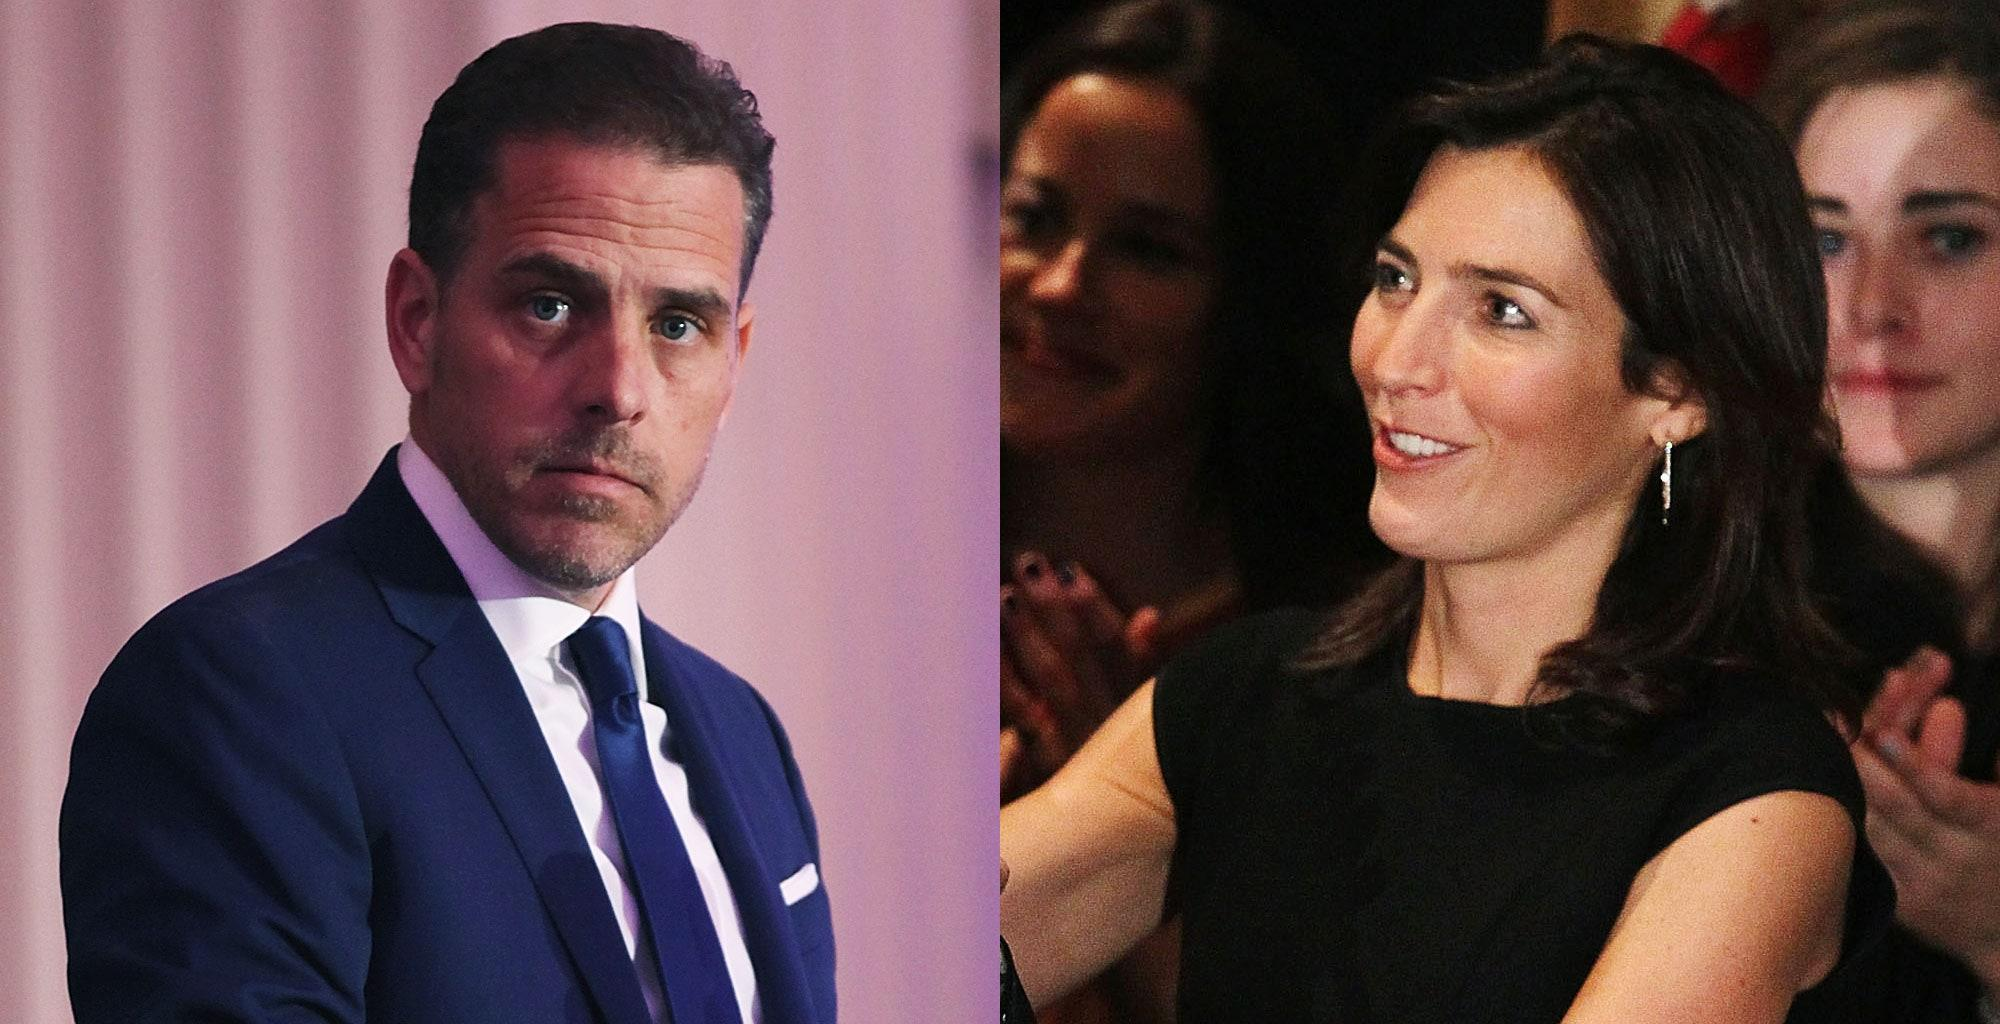 Hunter Biden Opens Up About His Controversial Romance With Late Brother Beau's Wife In His Memoir